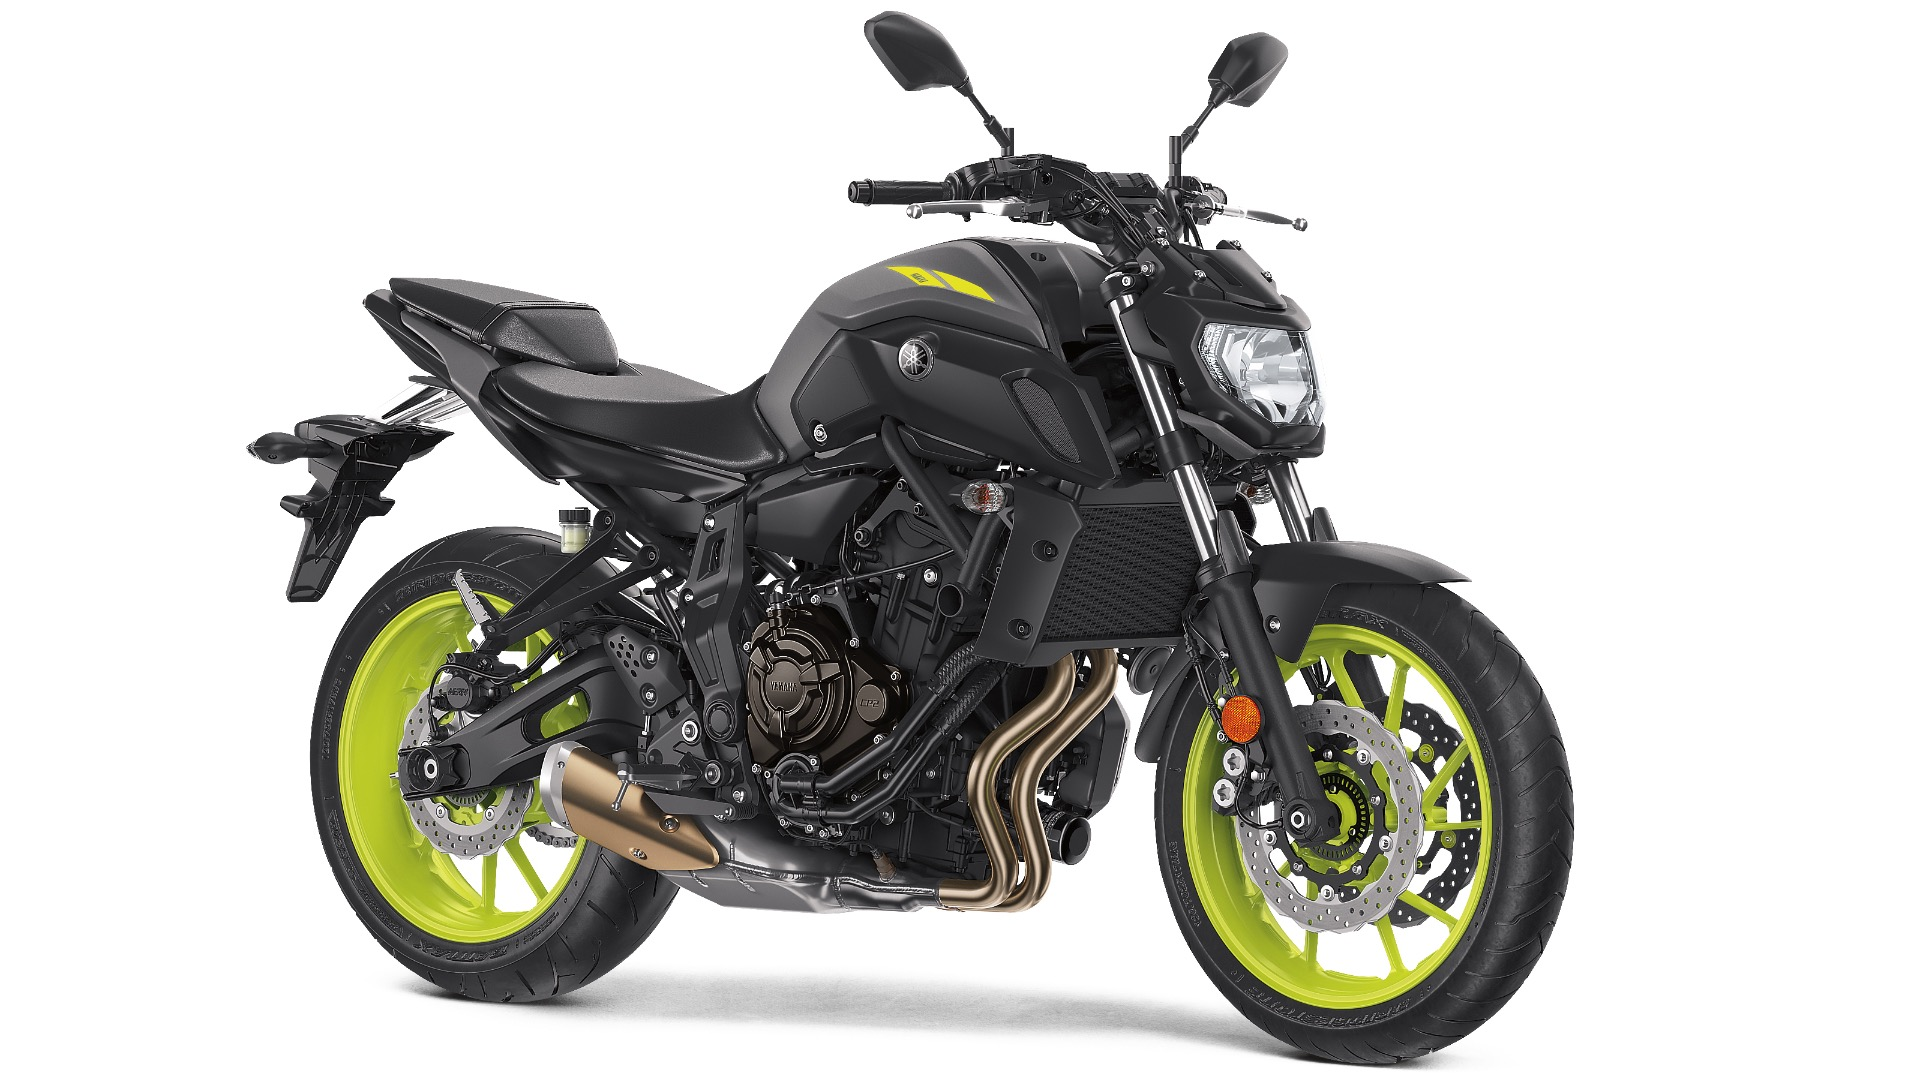 2018 yamaha mt 07 first look 12 fast facts. Black Bedroom Furniture Sets. Home Design Ideas